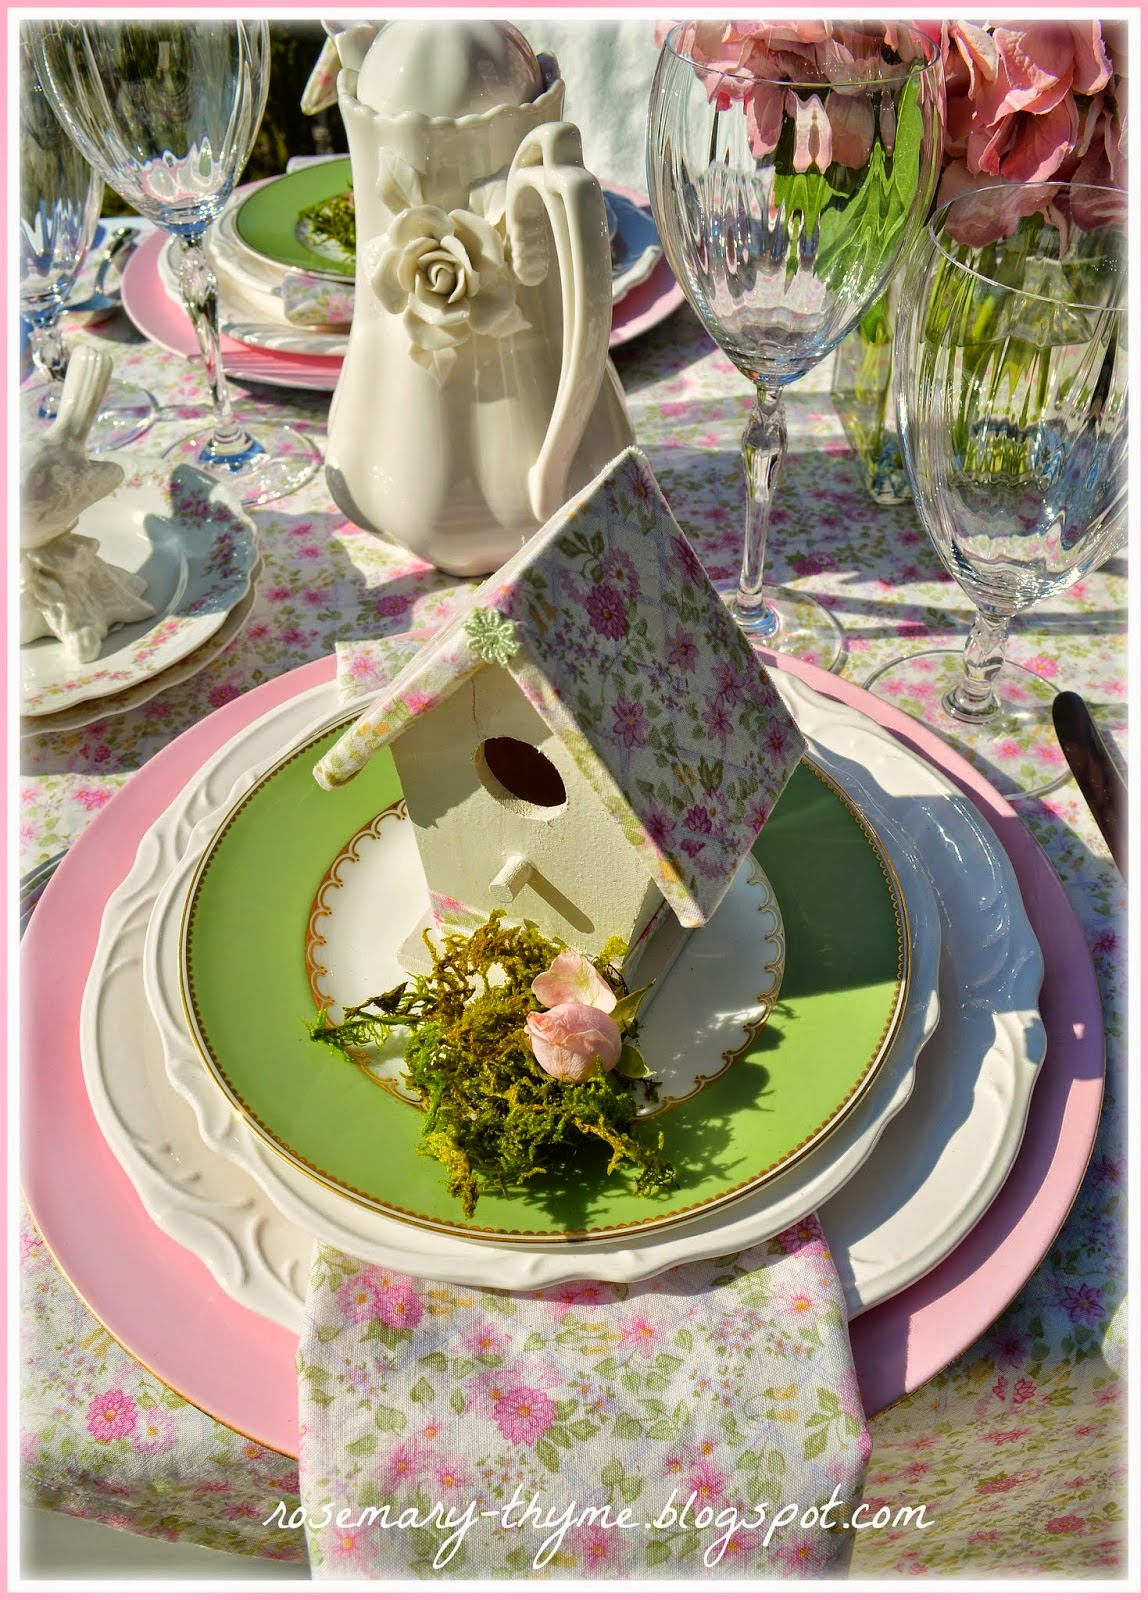 Rosemary Thyme Shared her Pink Splendor featured at One More Time Events.com